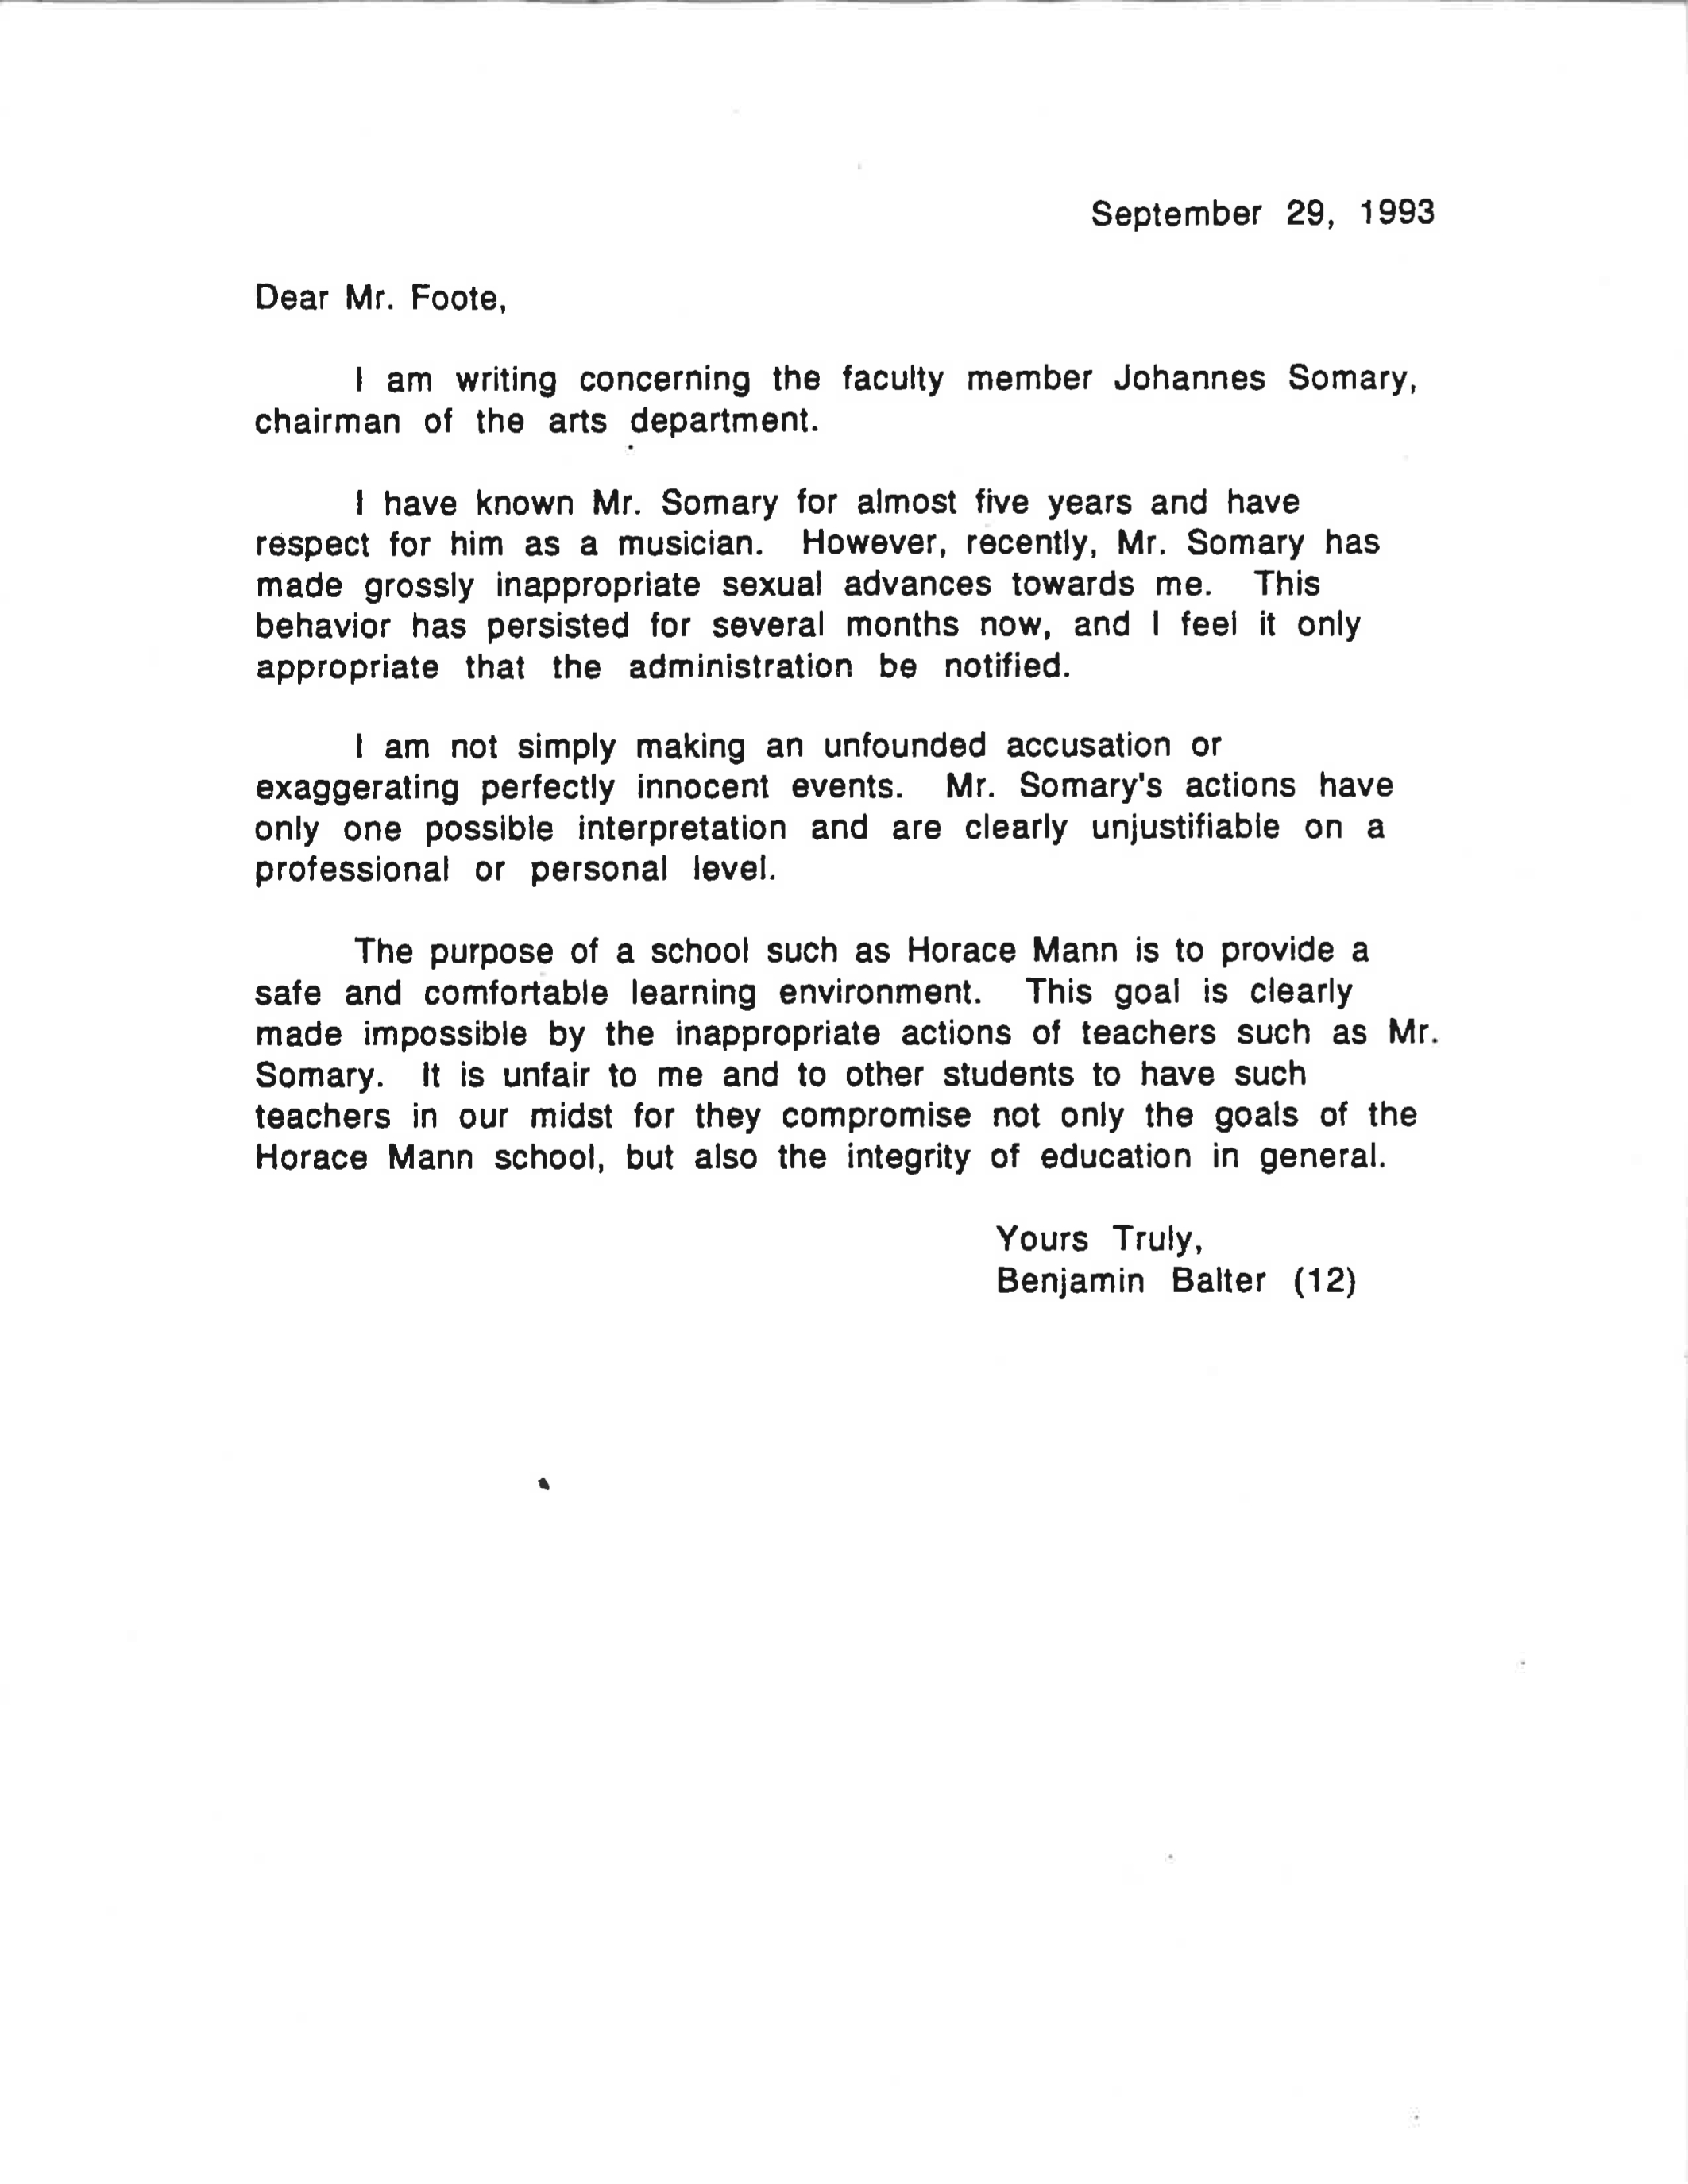 16 Year Old Boys Letter About Teachers Sexual Advances